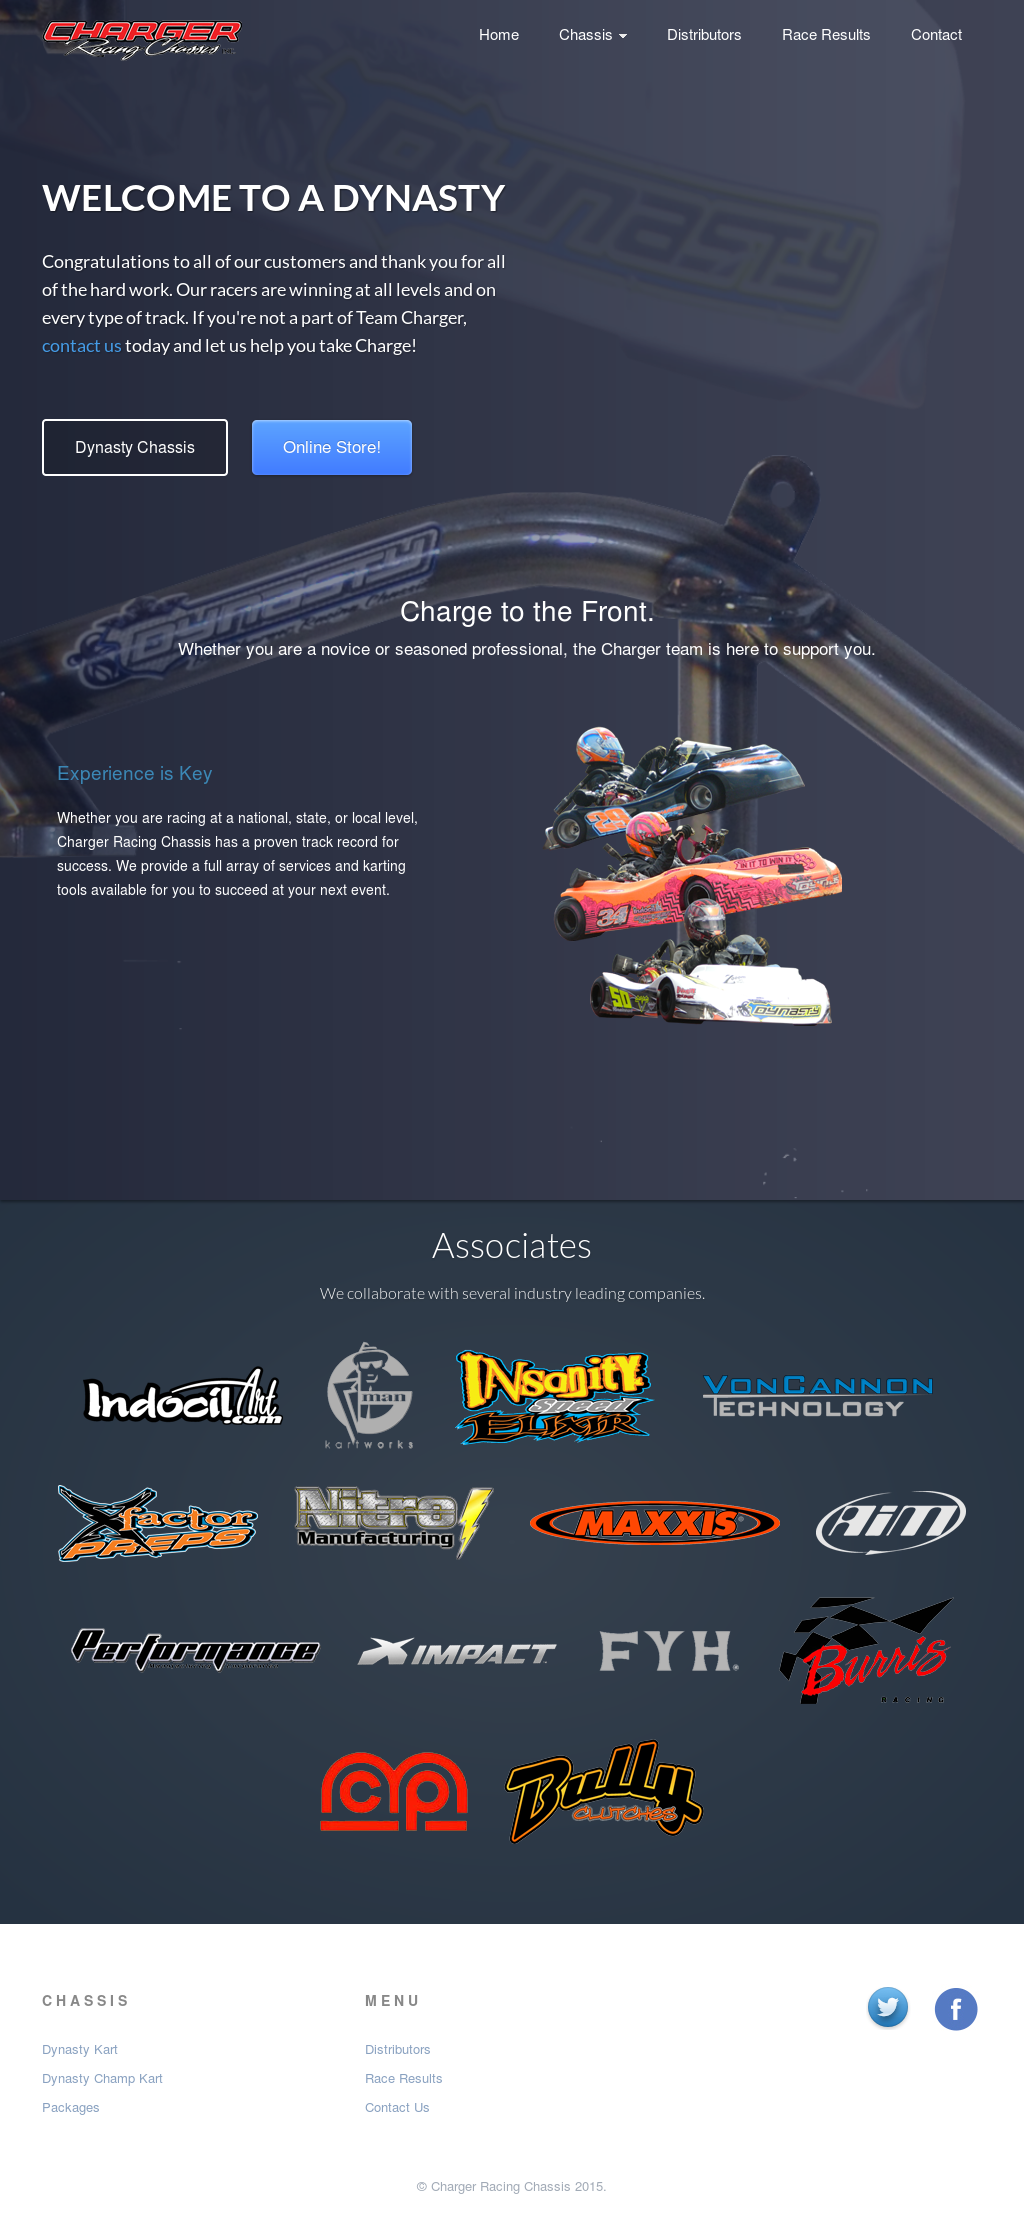 Charger Racing Chassis Competitors, Revenue and Employees